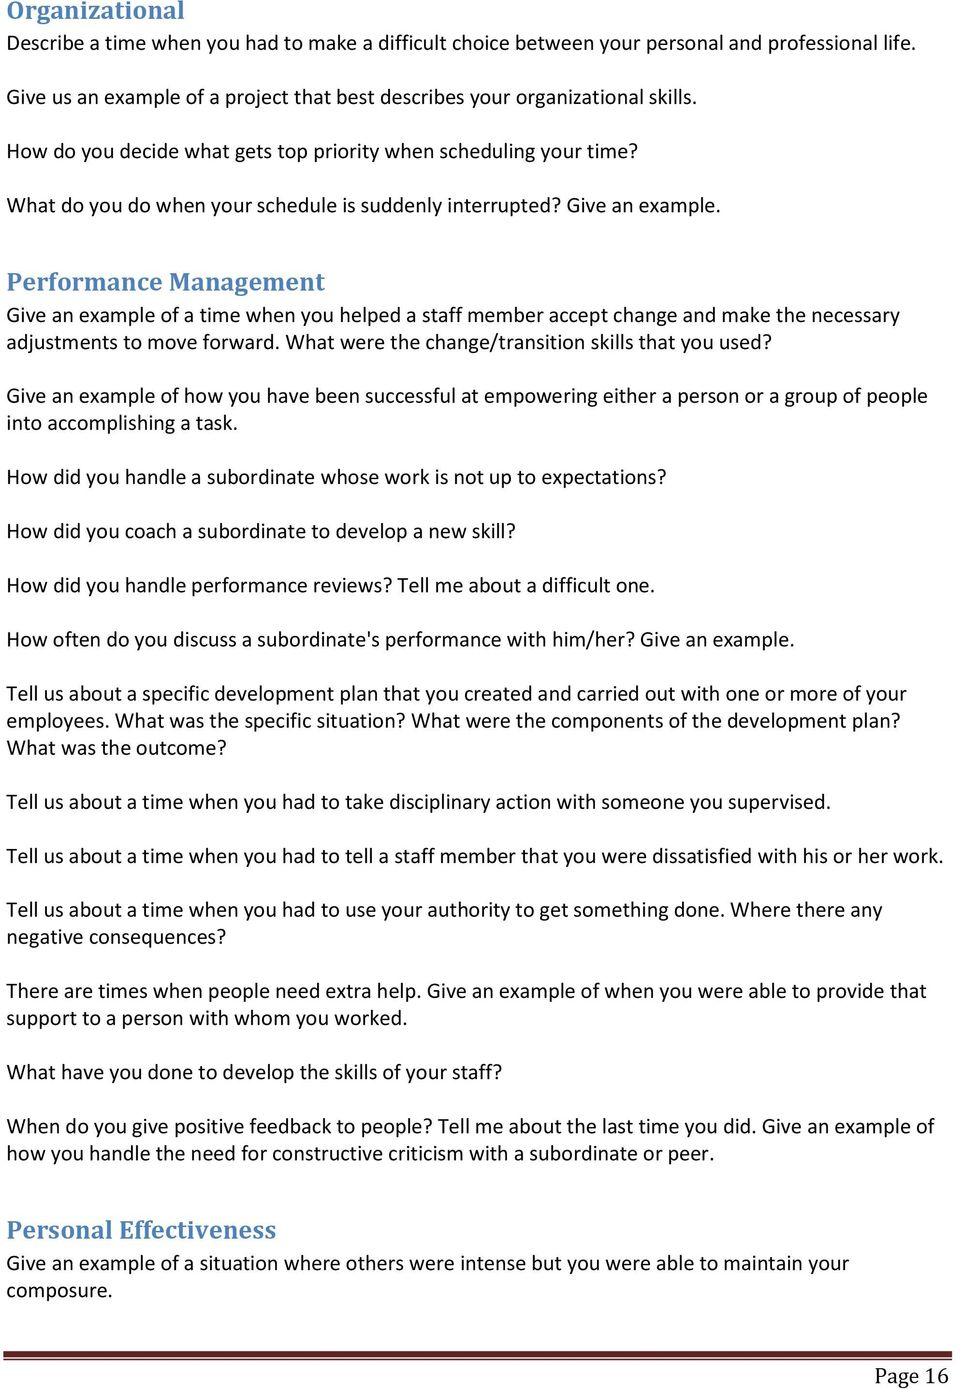 Performance Management Give an example of a time when you helped a staff member accept change and make the necessary adjustments to move forward. What were the change/transition skills that you used?